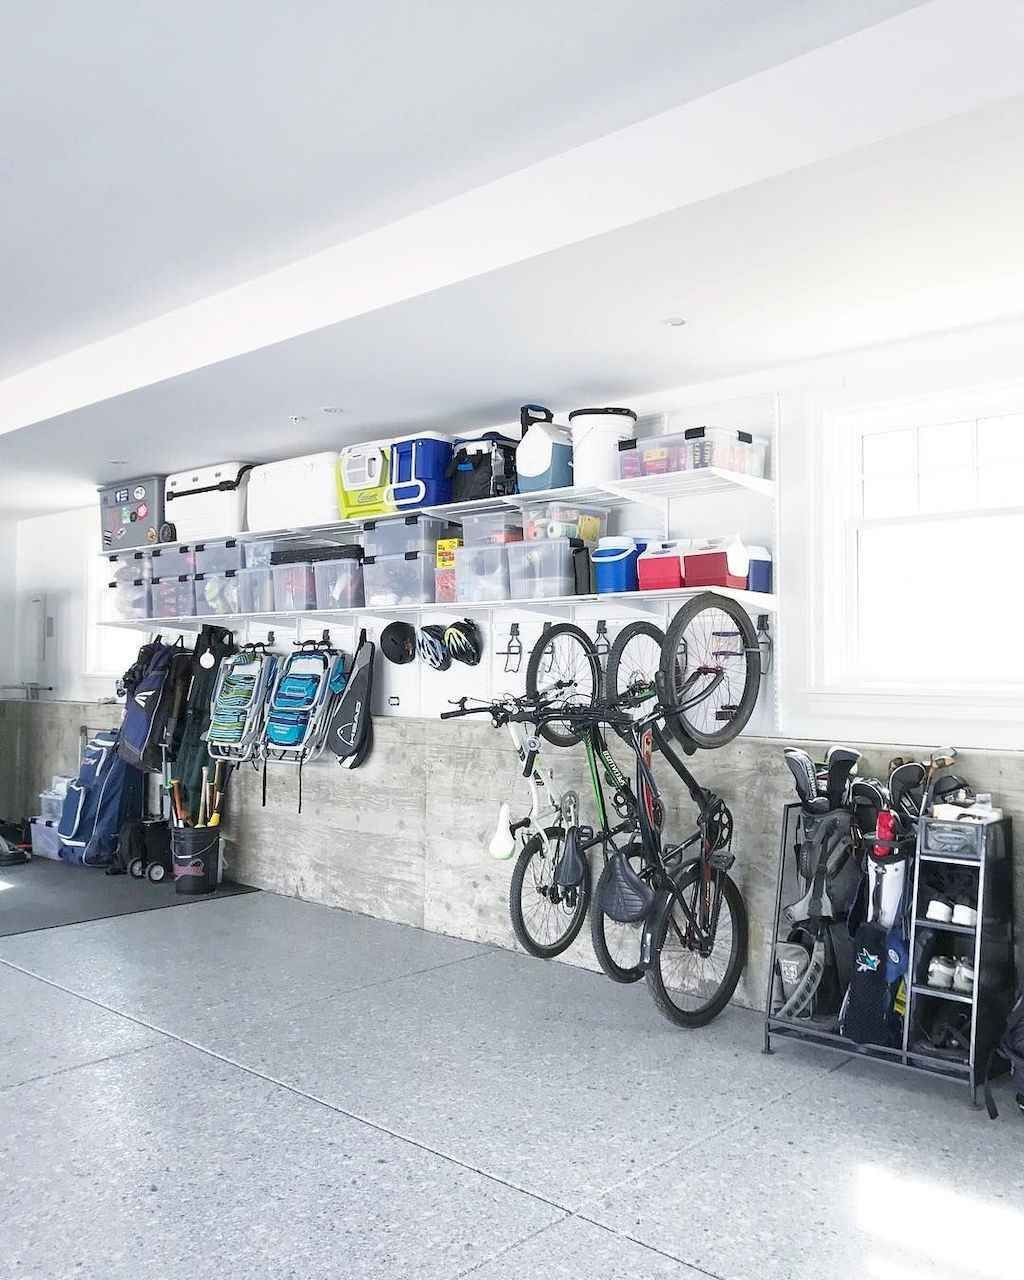 22 clever garage organization ideas in 2020 garage on cheap diy garage organization ideas to inspire you tips for clearing id=99384